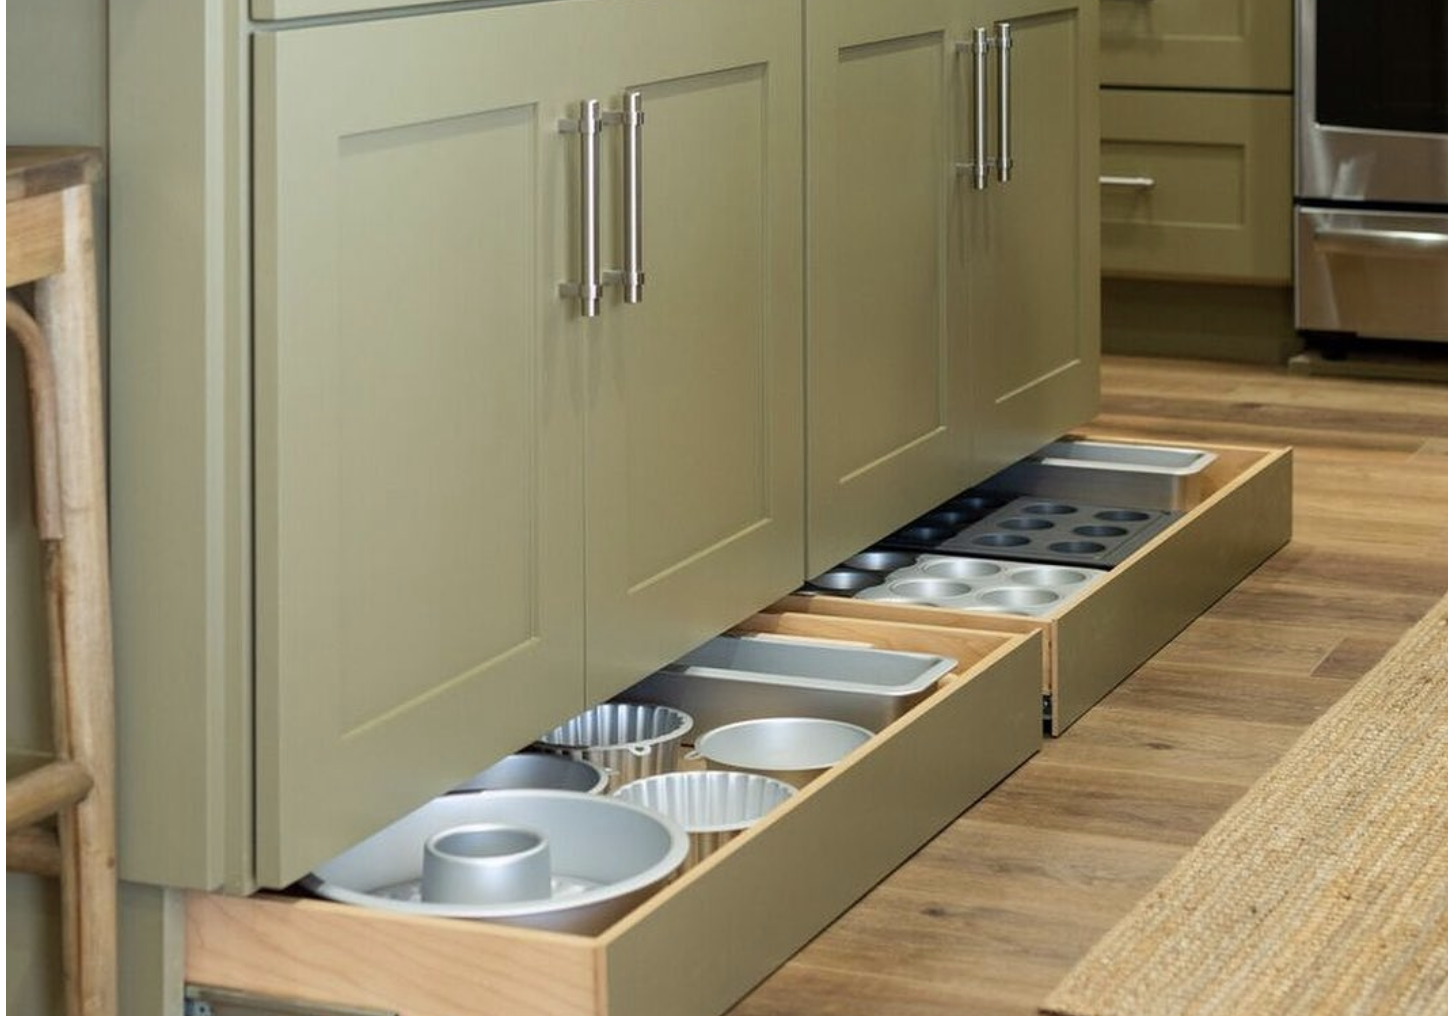 Toe-Kick Drawers Are The Hidden Storage Space That Will Transform Your Kitchen